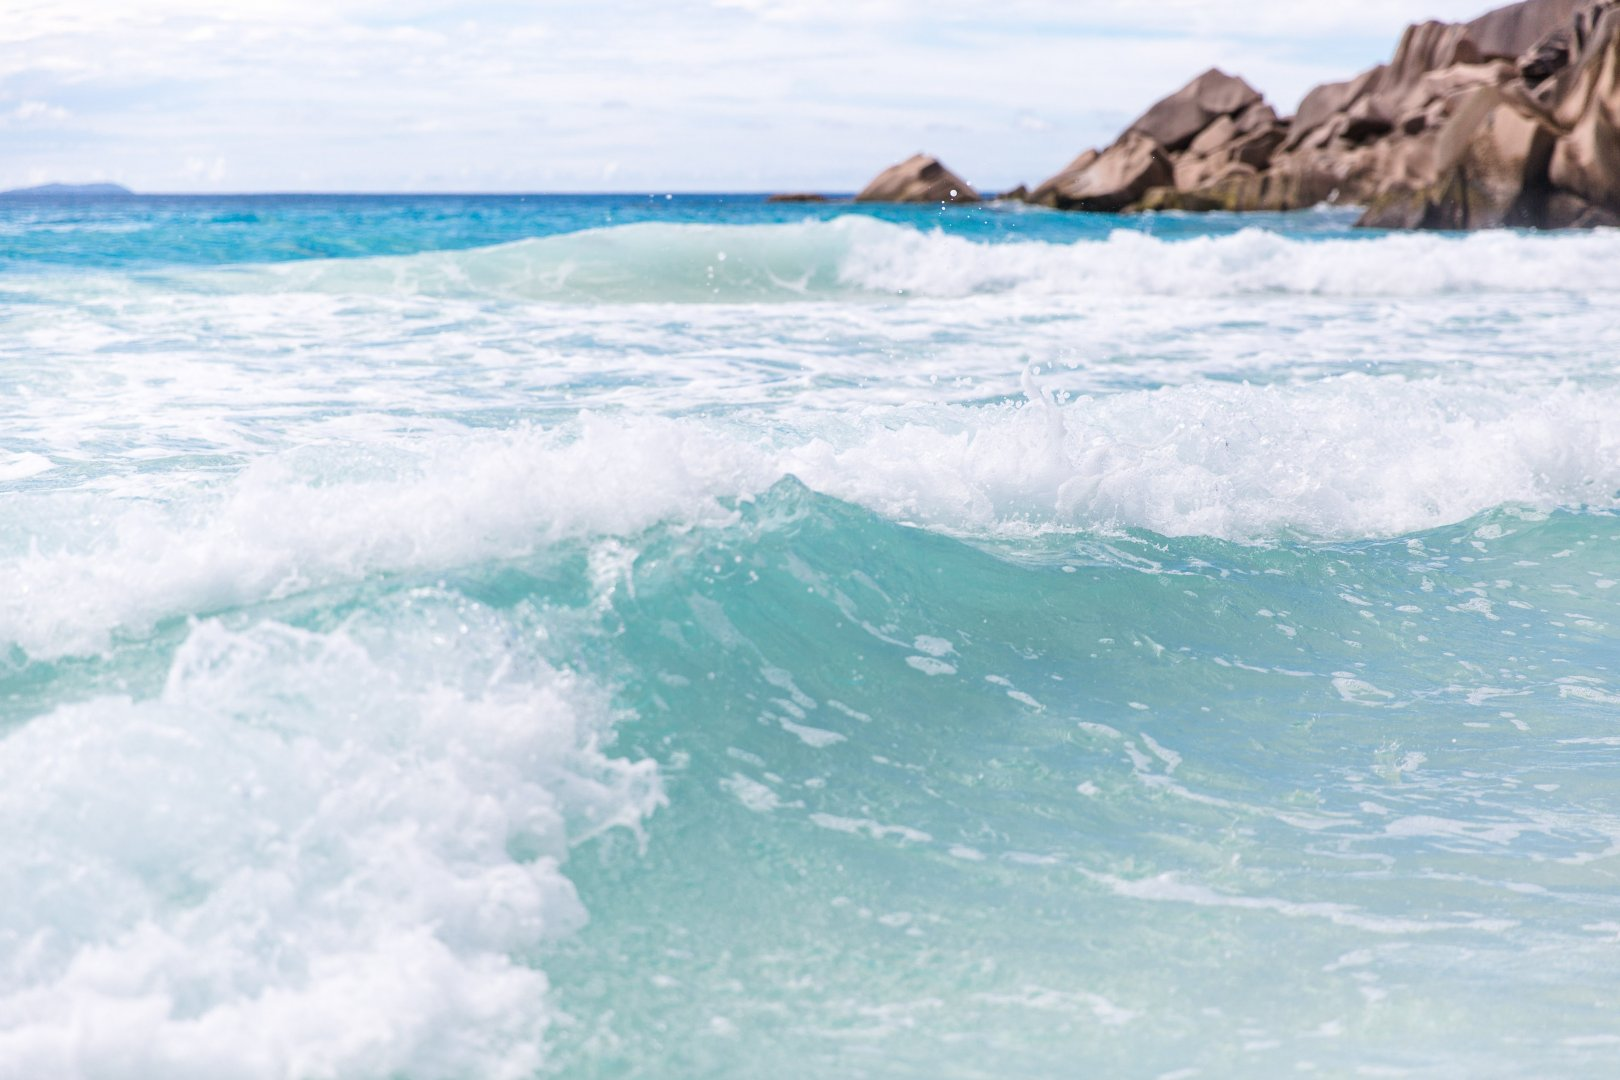 Wave Body of water Wind wave Ocean Sea Water Sky Coast Shore Water resources Coastal and oceanic landforms Tide Beach Surfing Bay Cliff Rock Surface water sports Vacation Cloud Landscape Tourism Terrain Tropics Wind Caribbean